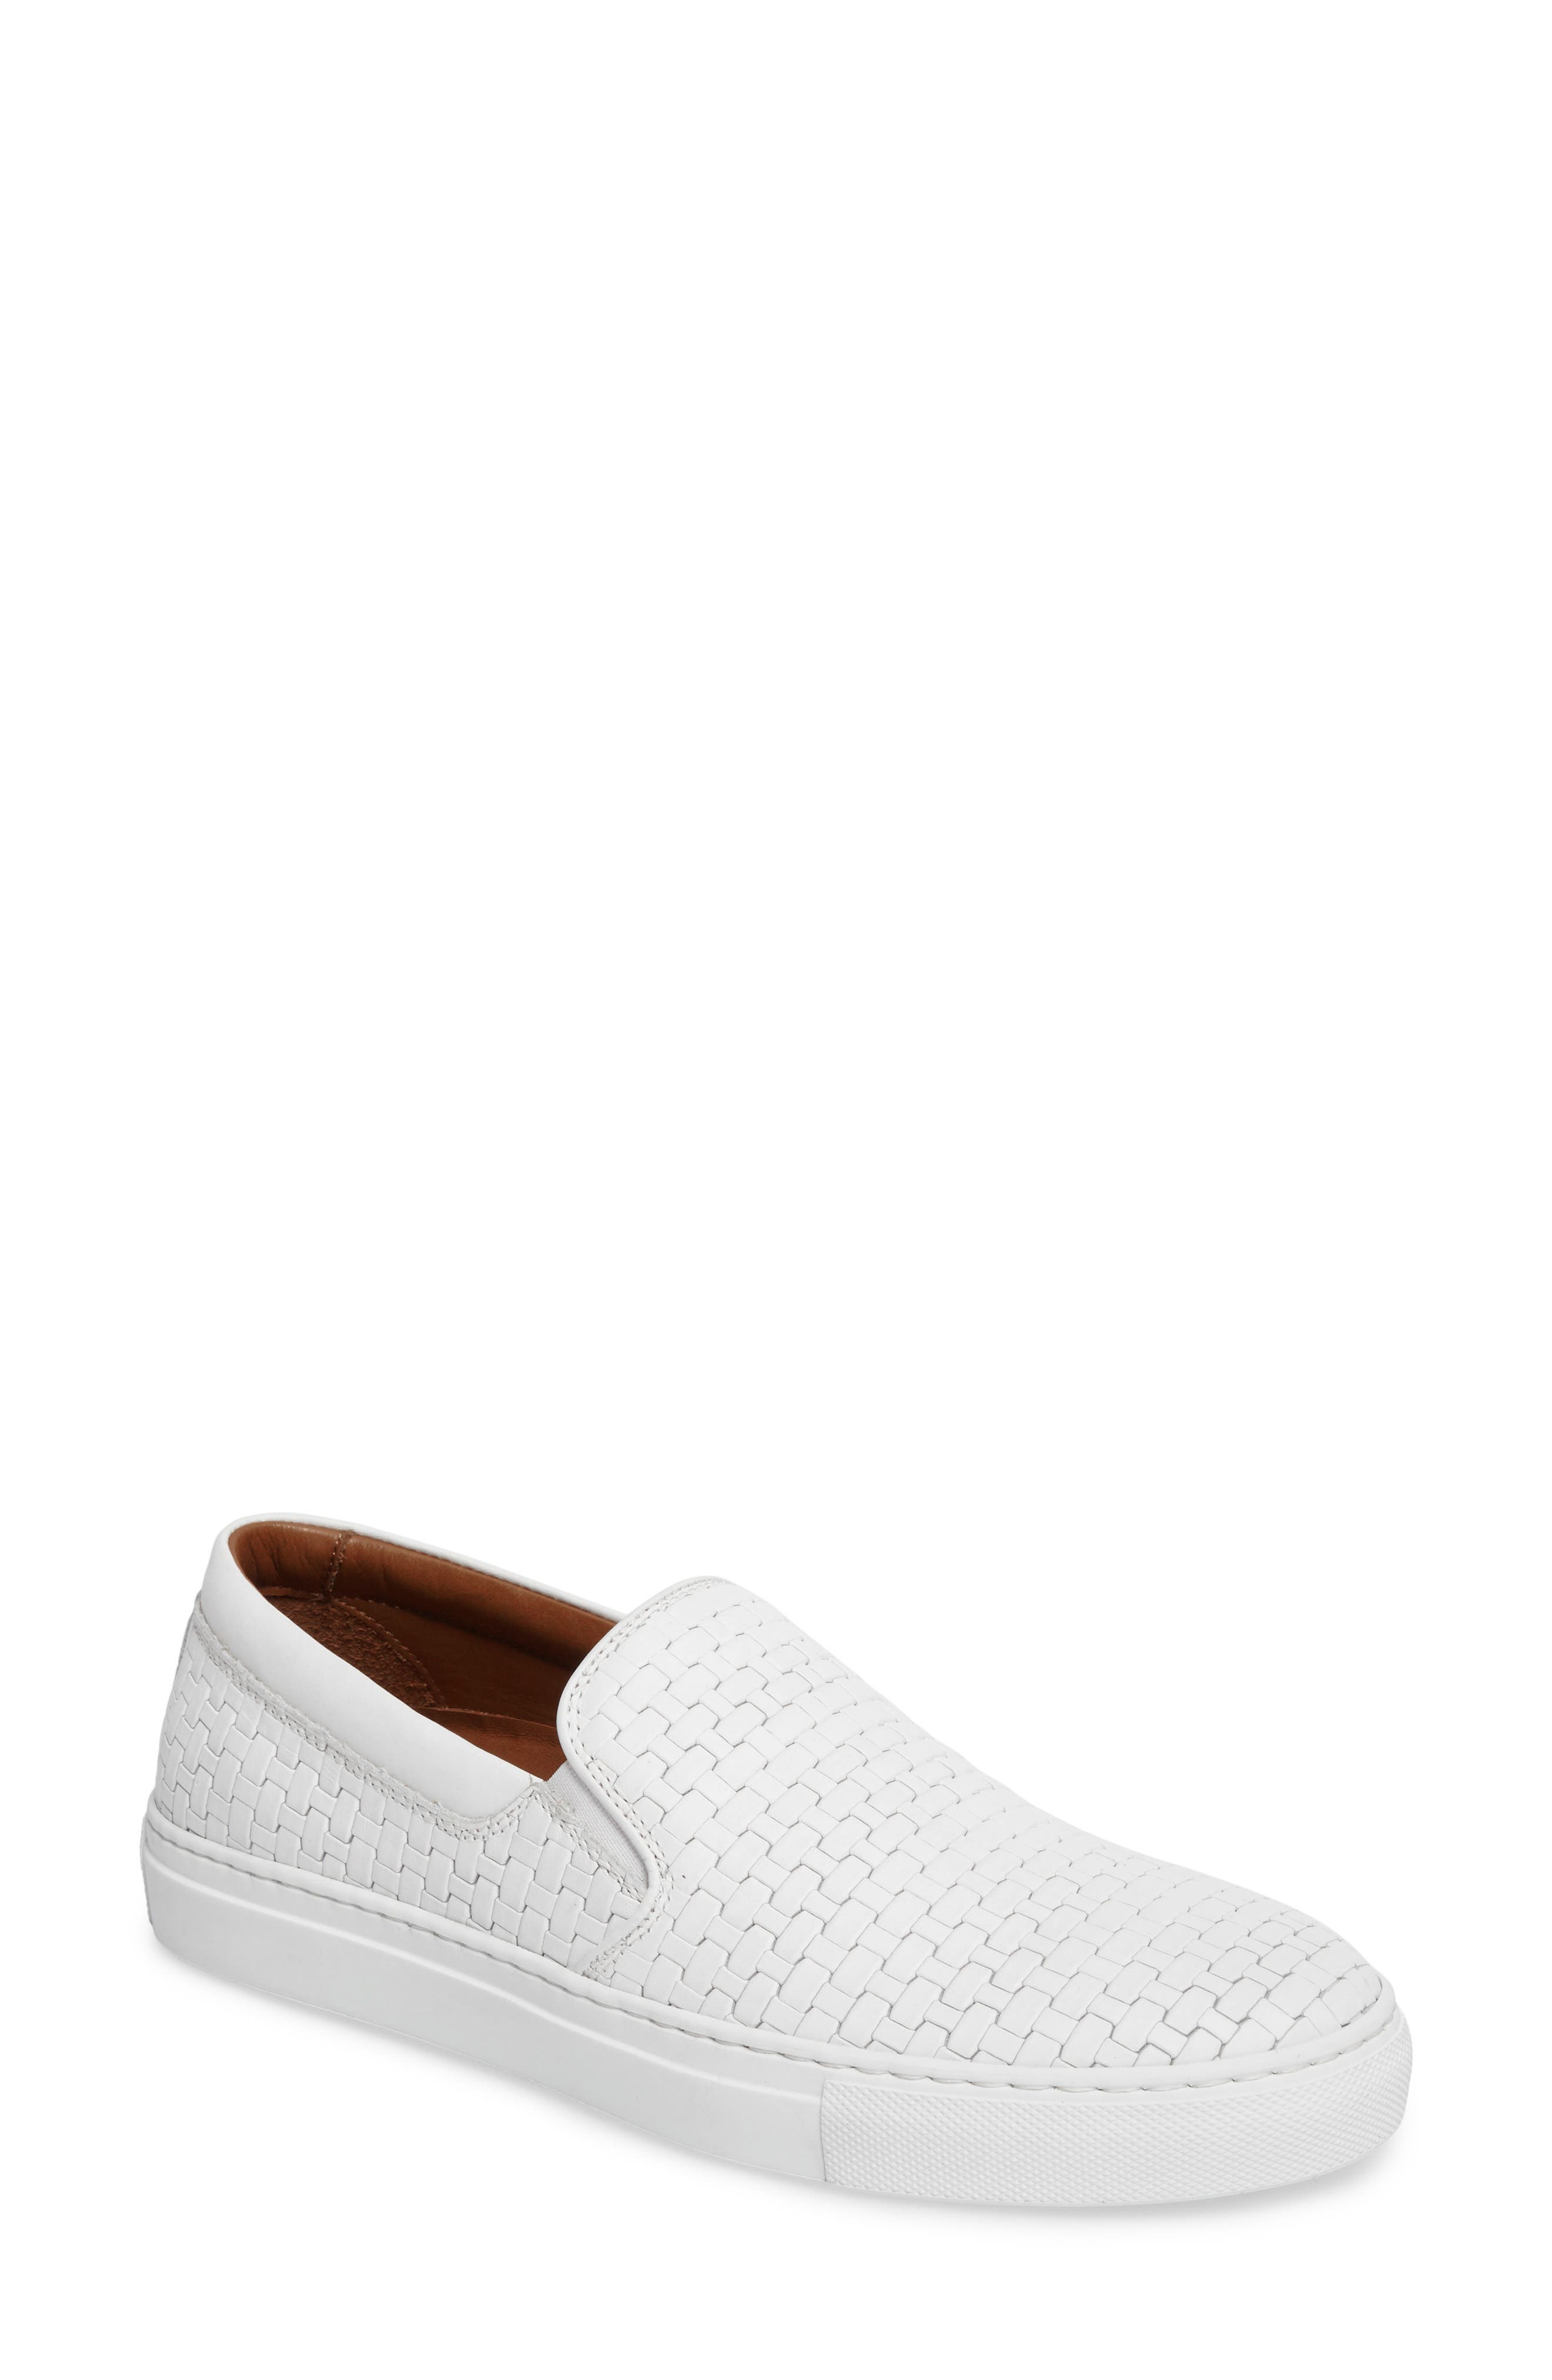 AQUATALIA, Ashlynn Embossed Slip-On Sneaker, Main thumbnail 1, color, WHITE